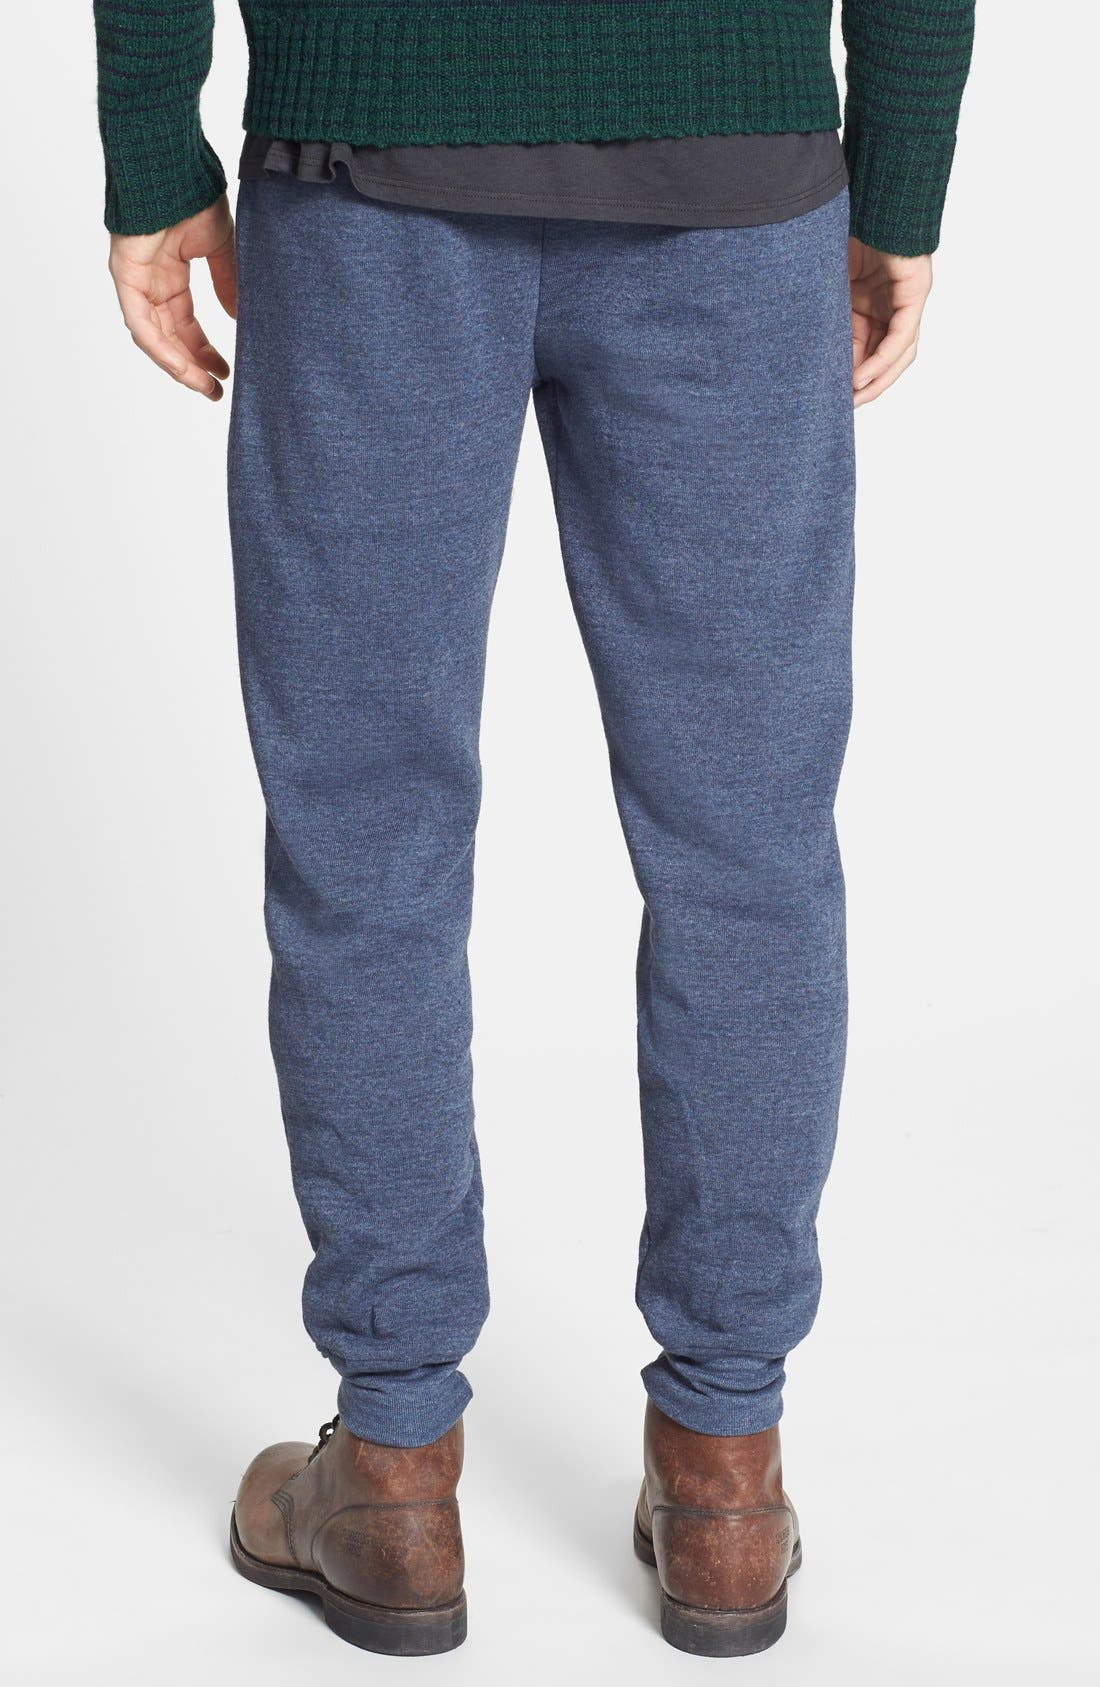 'Dodgeball' Eco Fleece Sweatpants,                             Alternate thumbnail 22, color,